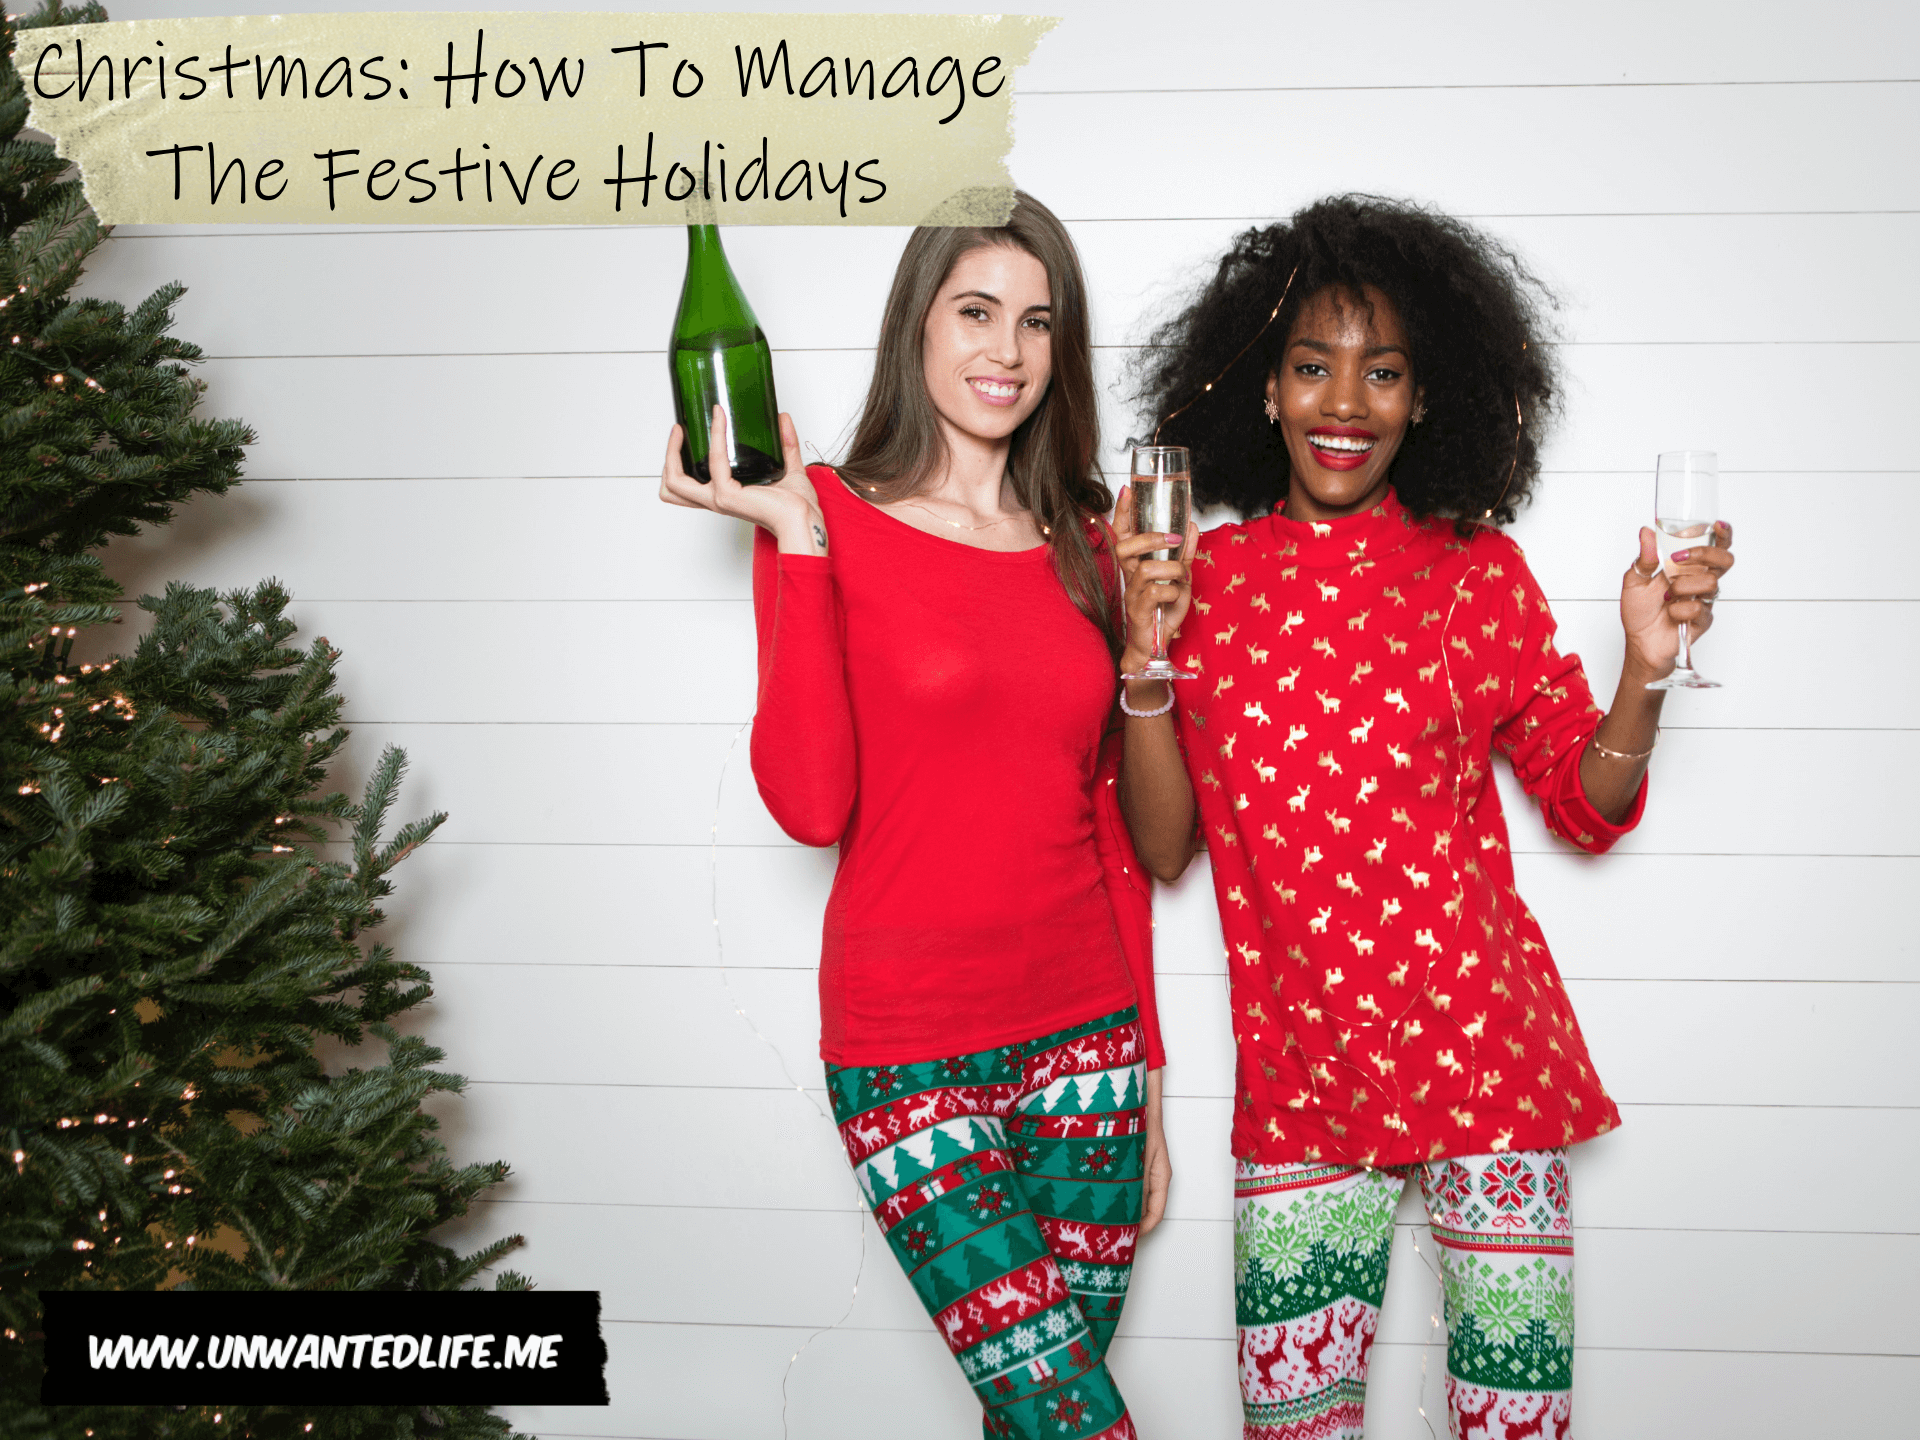 Christmas How To Manage The Festive Holidays | Mental Health and Wellness | Unwanted Life